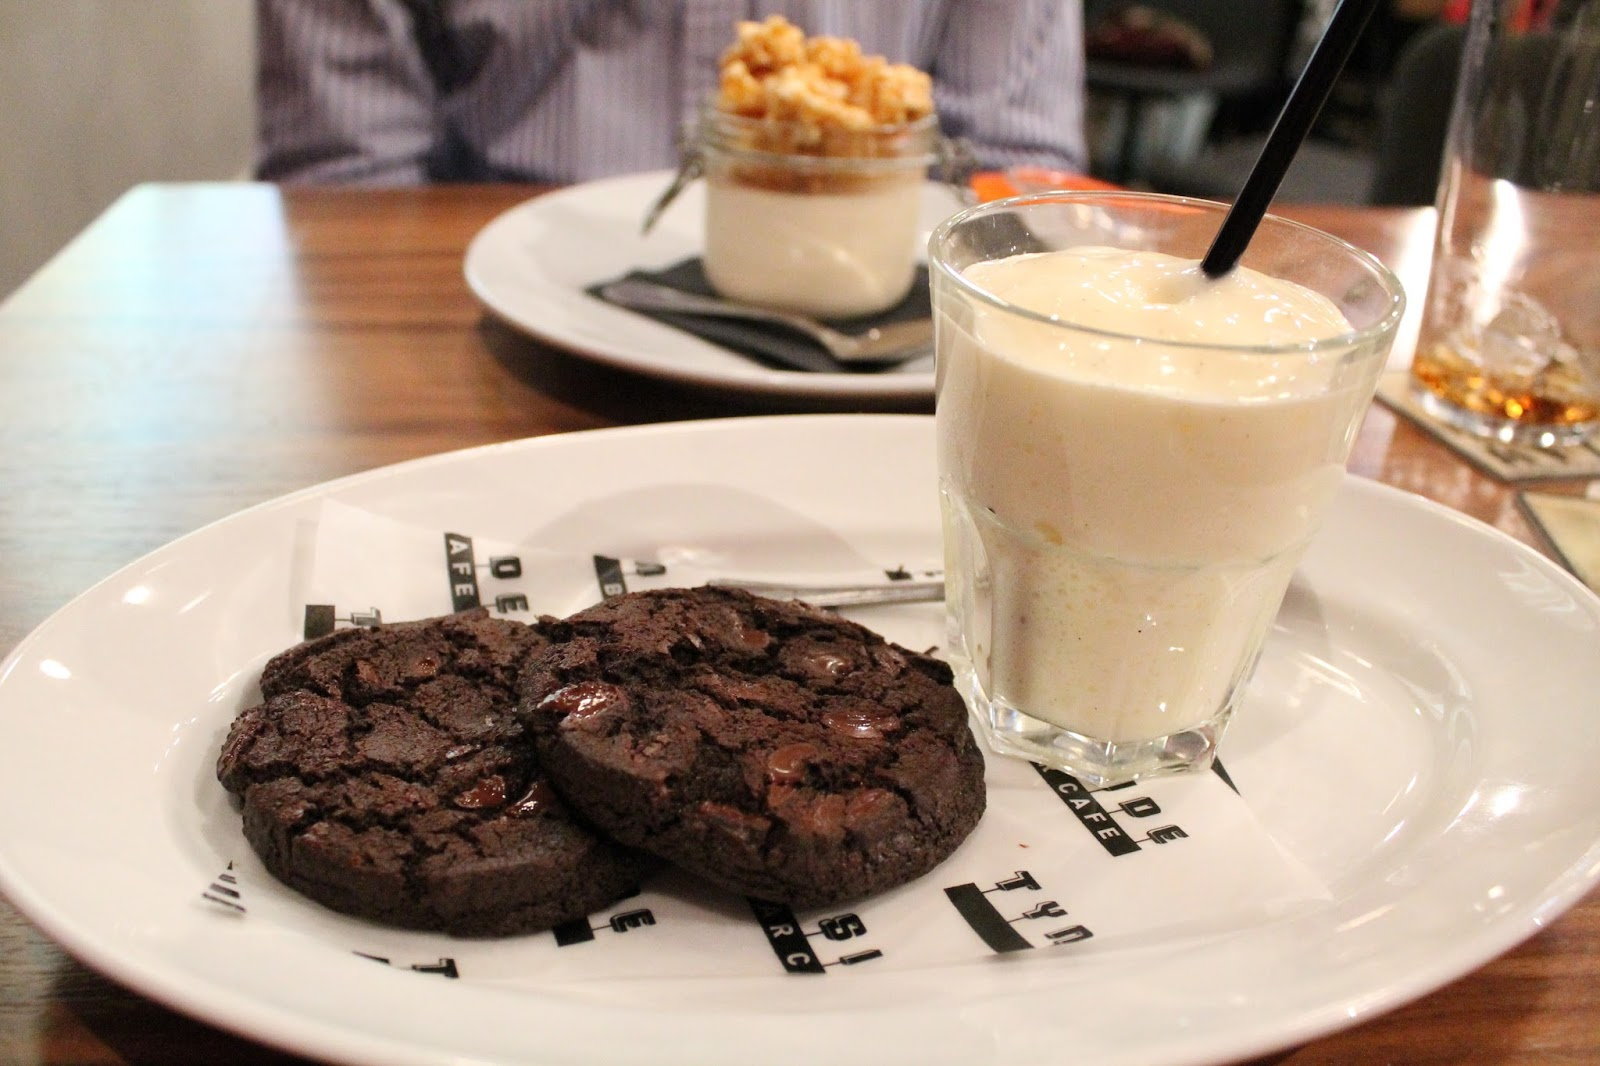 Time for food and a movie - Tyneside Bar Cafe Review Newcastle